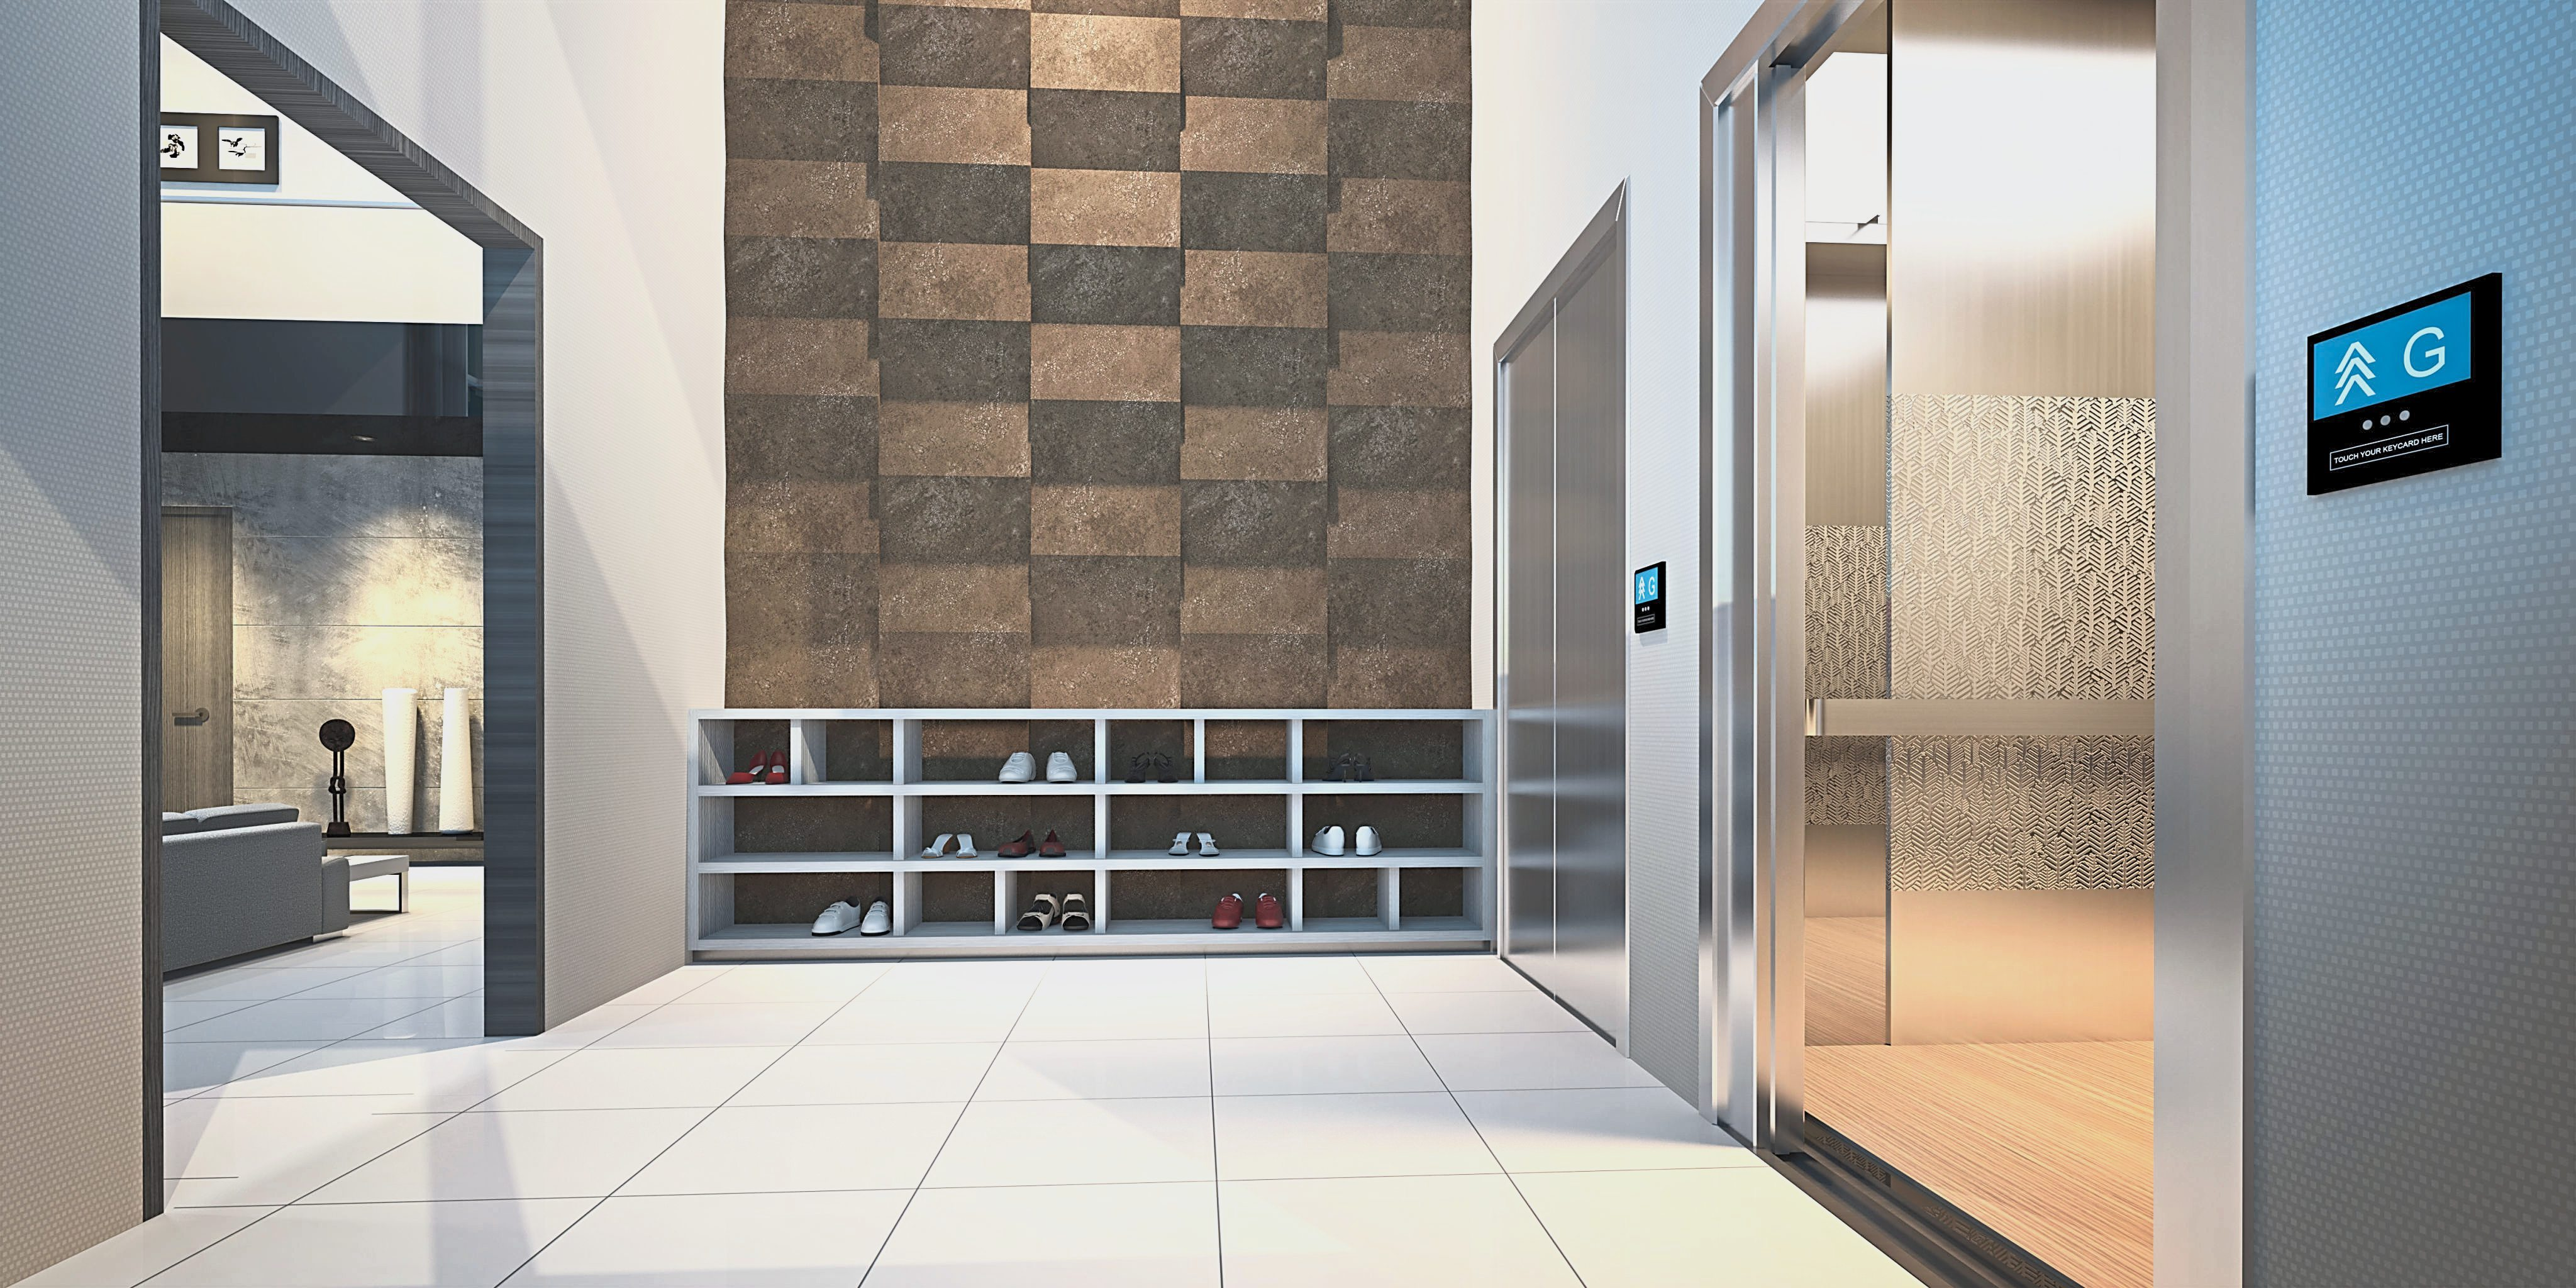 Private lifts provide direct access to your residences